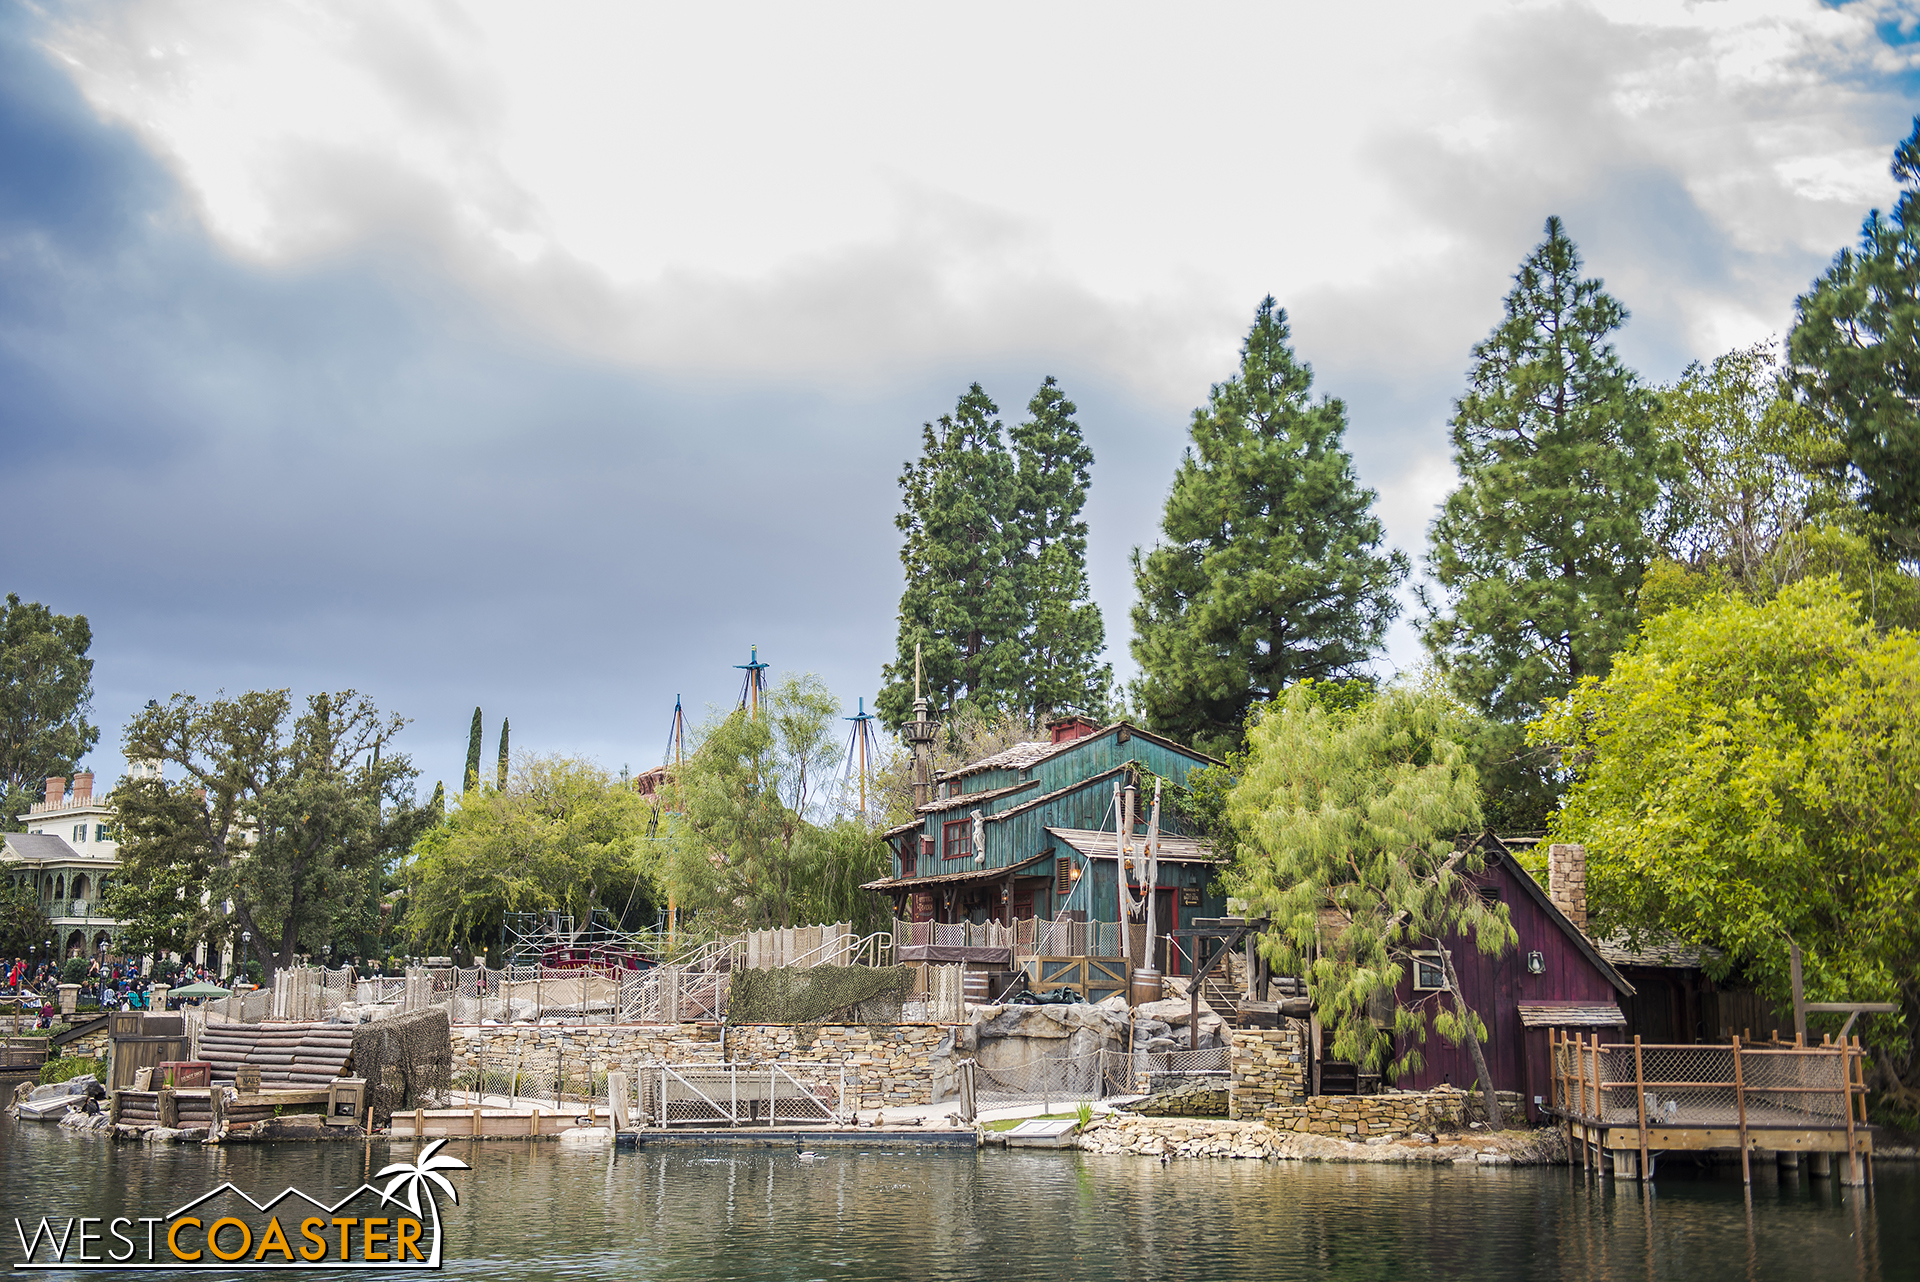 The other side of Tom Sawyer's Island.